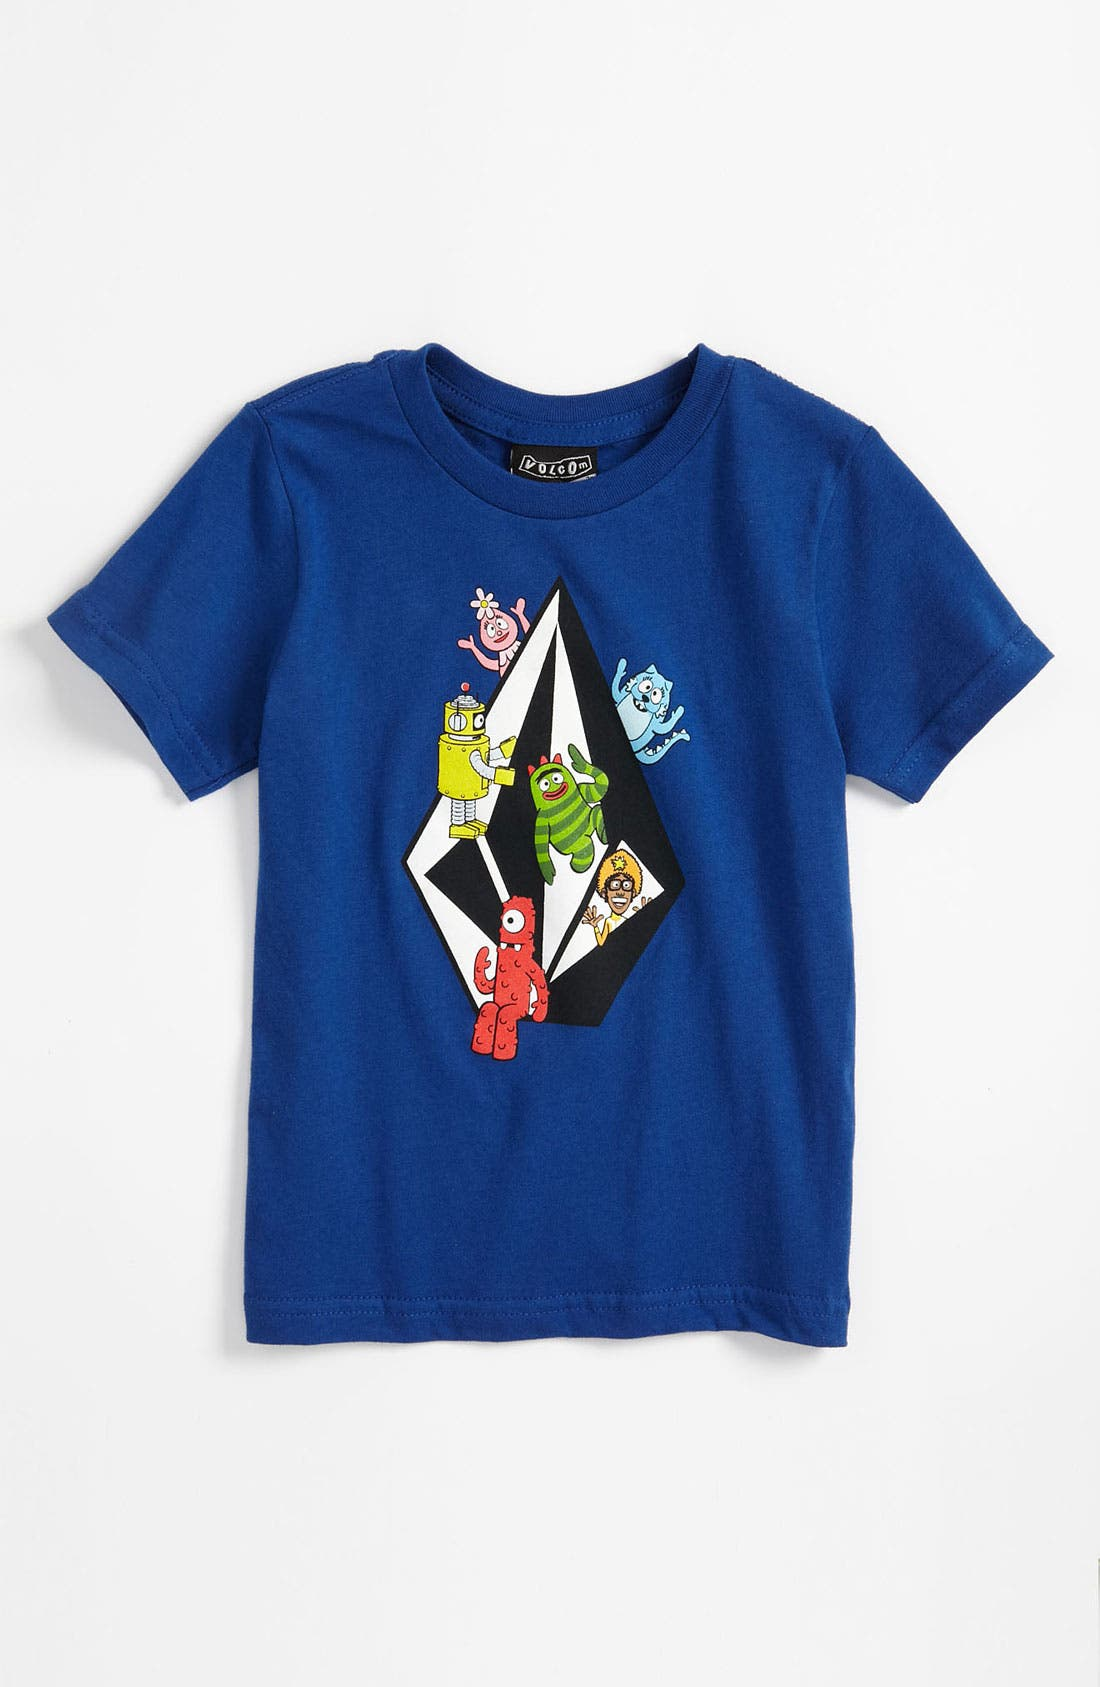 Alternate Image 1 Selected - Volcom 'Yo Gabba Gabba!' T-Shirt (Little Boys)